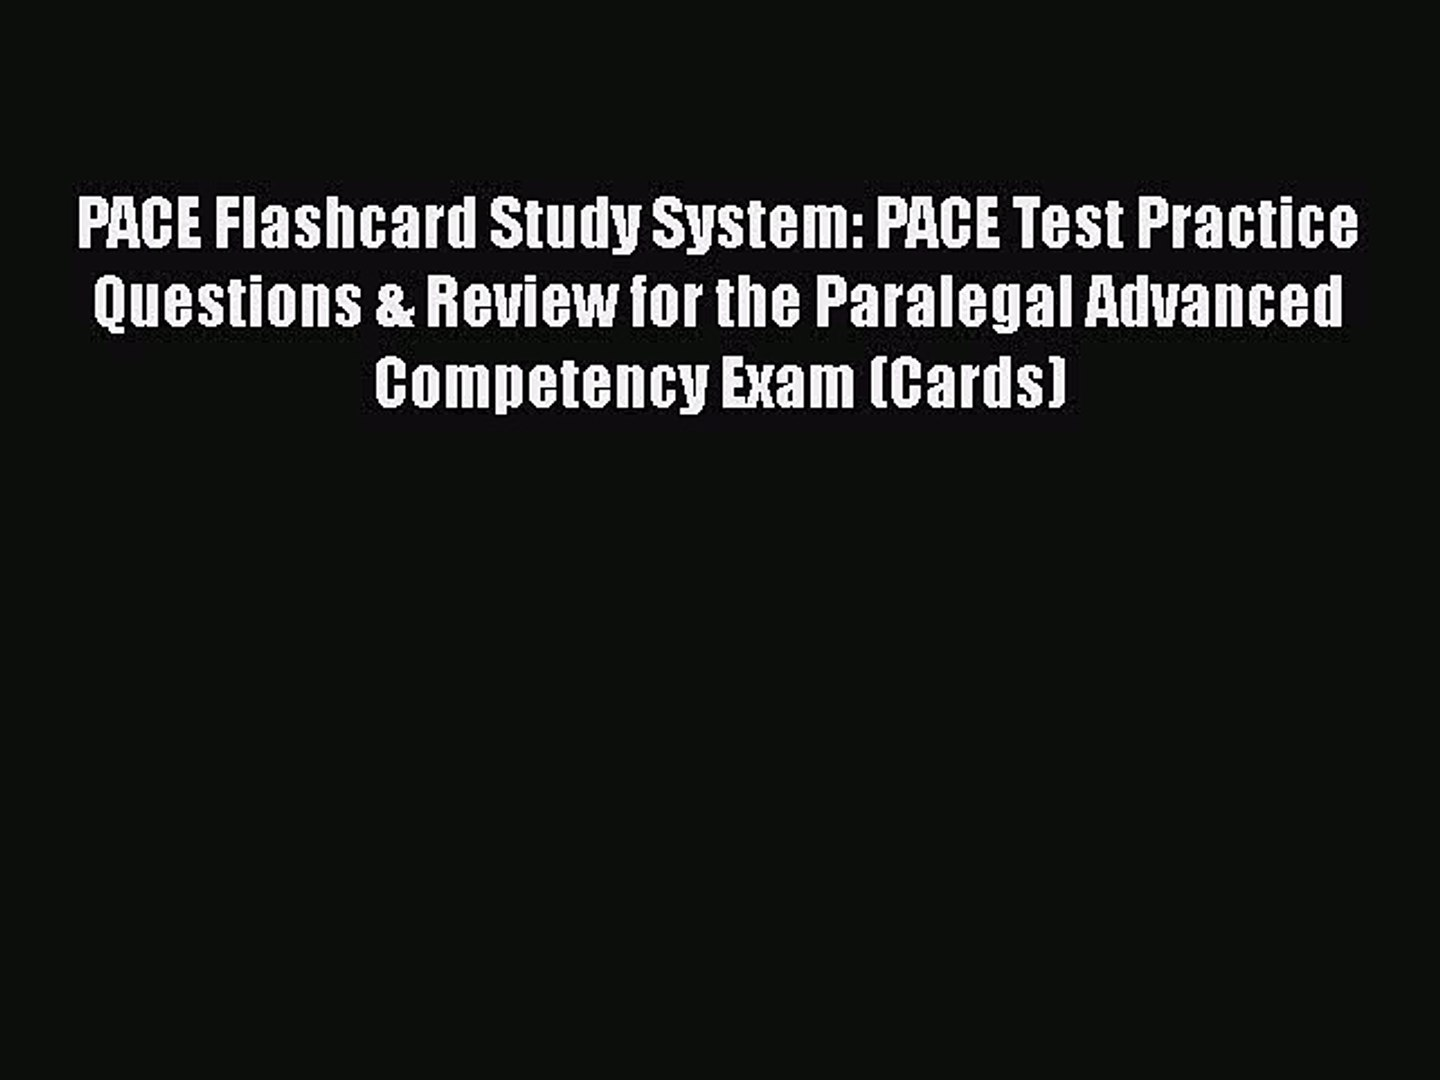 Read PACE Flashcard Study System: PACE Test Practice Questions & Review for the Paralegal Advanc